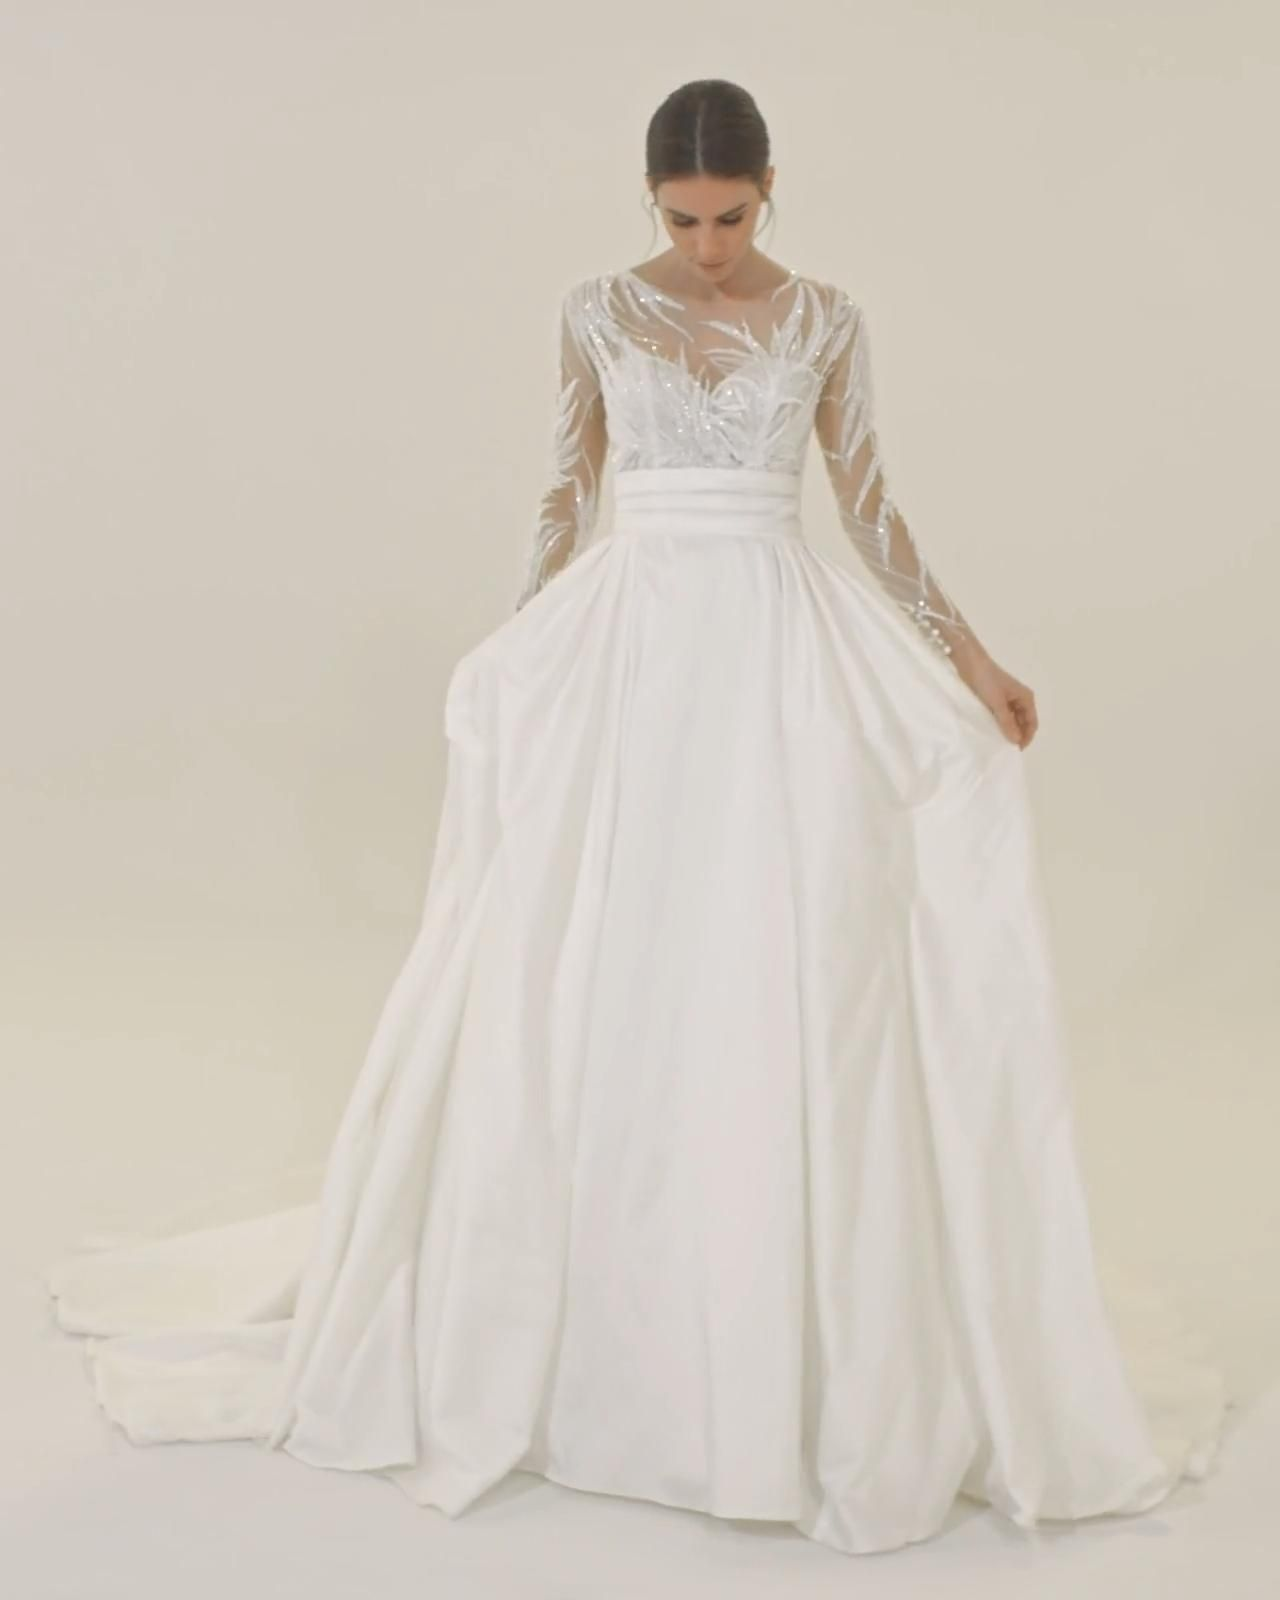 Princess wedding dress with long sleeves tattoo effect, Blondell by  Pronovias [Video]   Wedding dresses, Short wedding dress, Pronovias wedding  dress